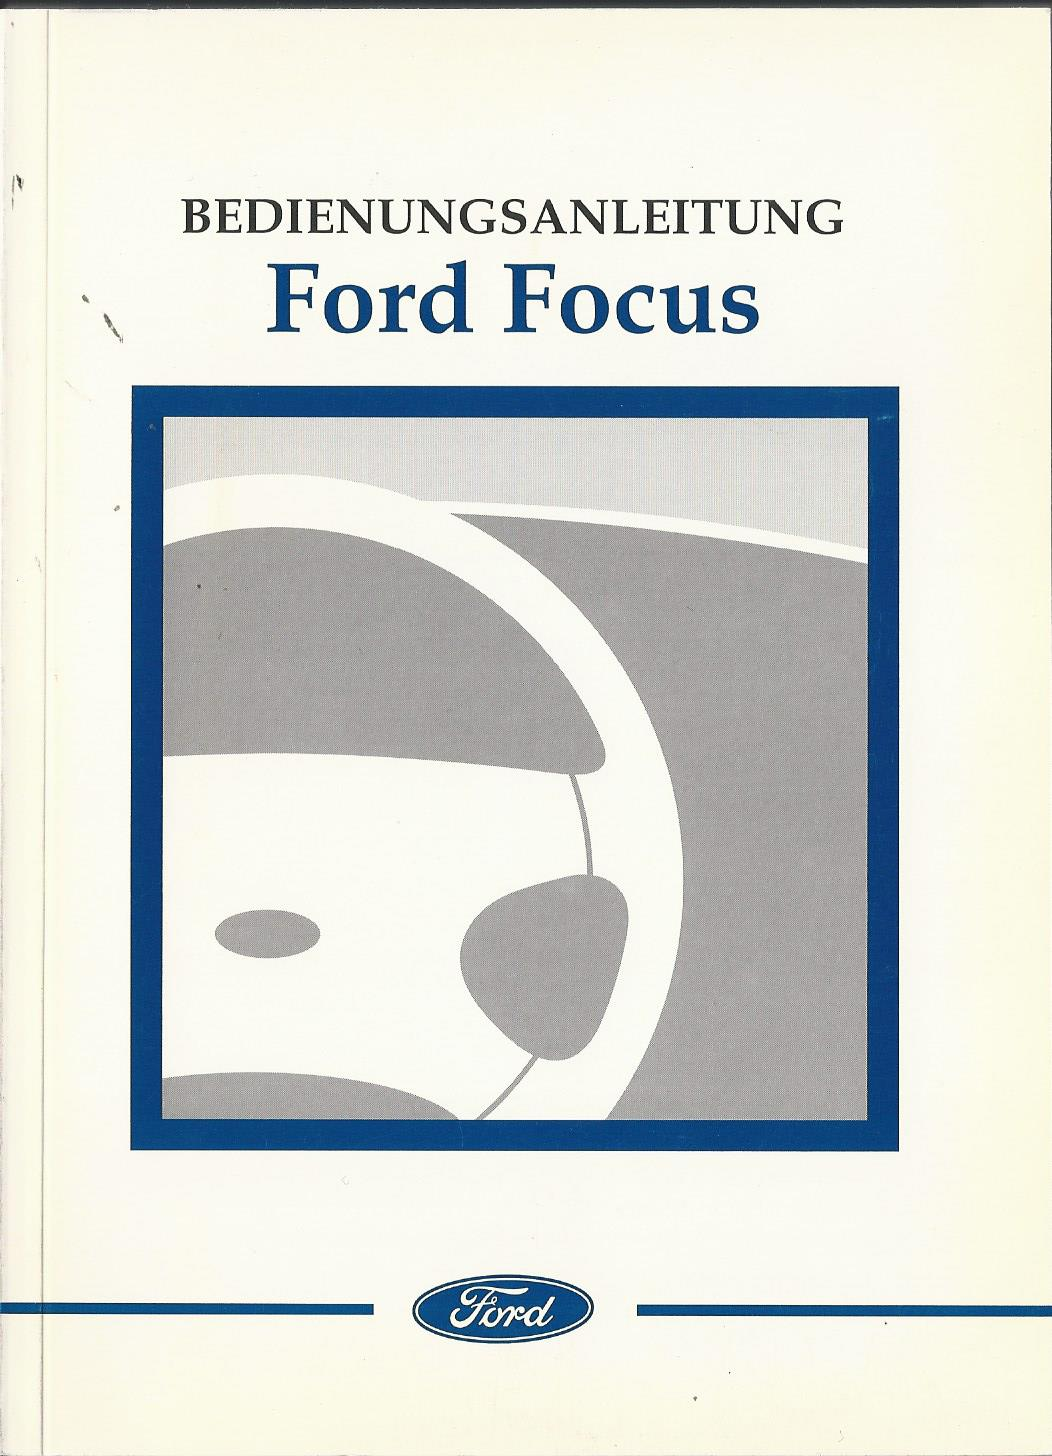 betriebsanleitung ford focus 2009 haynes ford c-max owners workshop manual Ford Focus Owners Manual